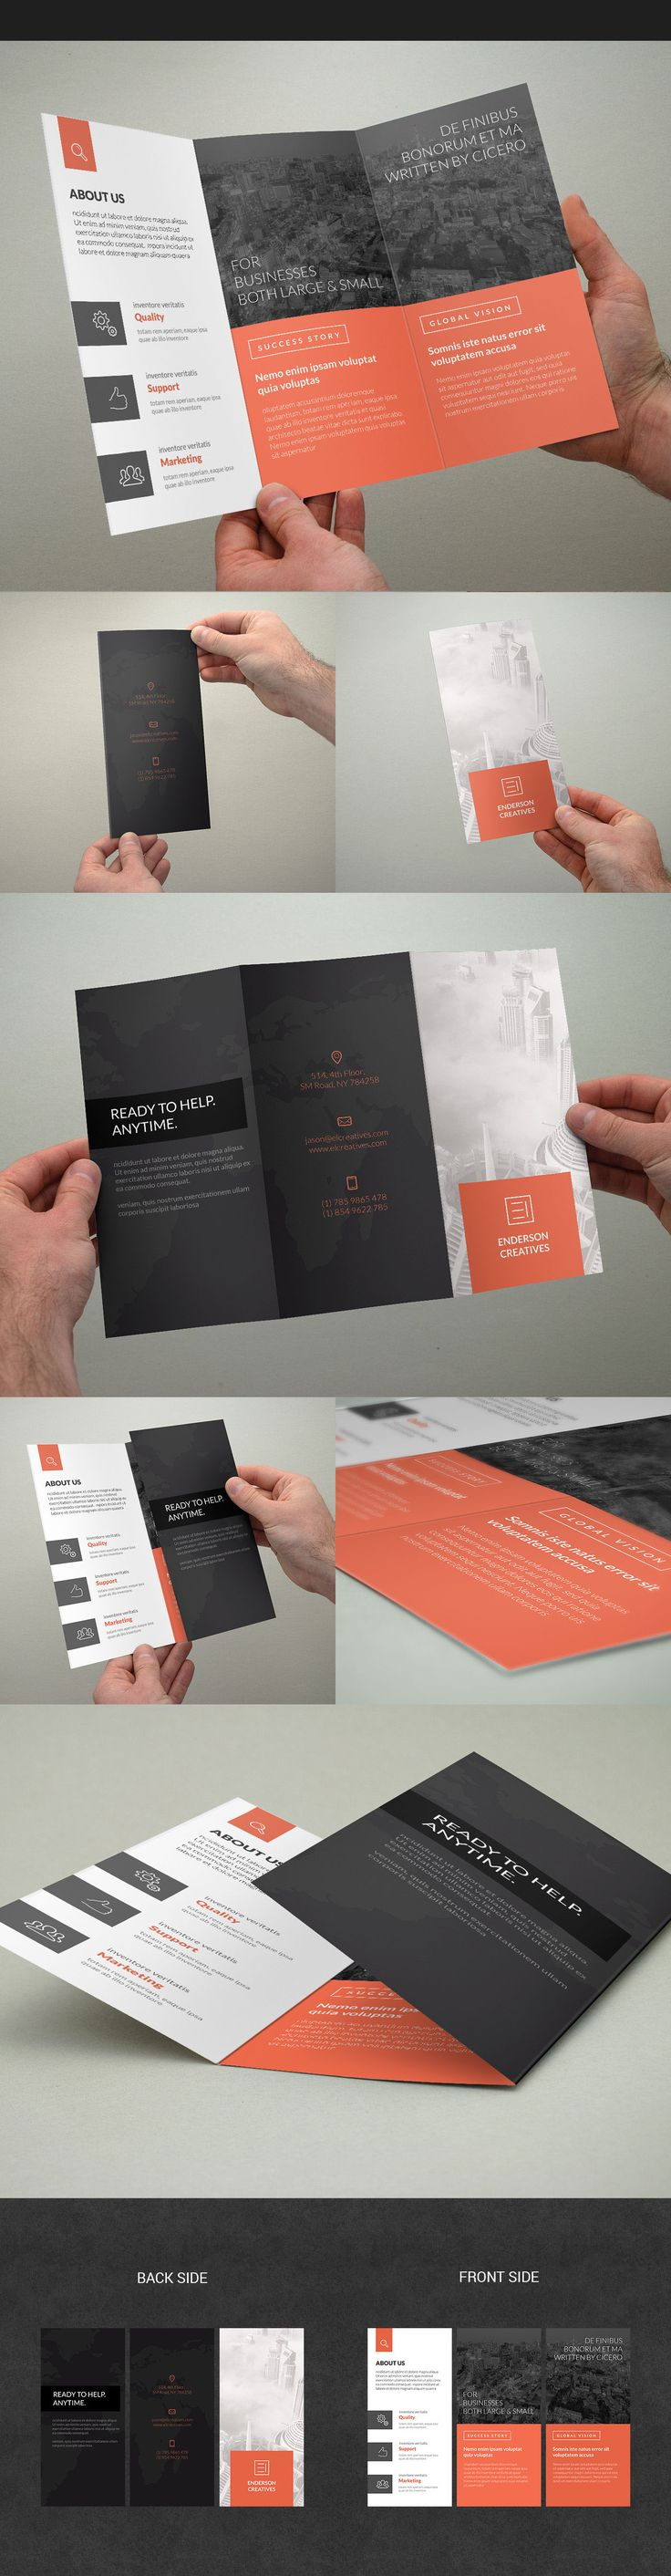 Minimal Multipurpose Trifold Brochure on Behance